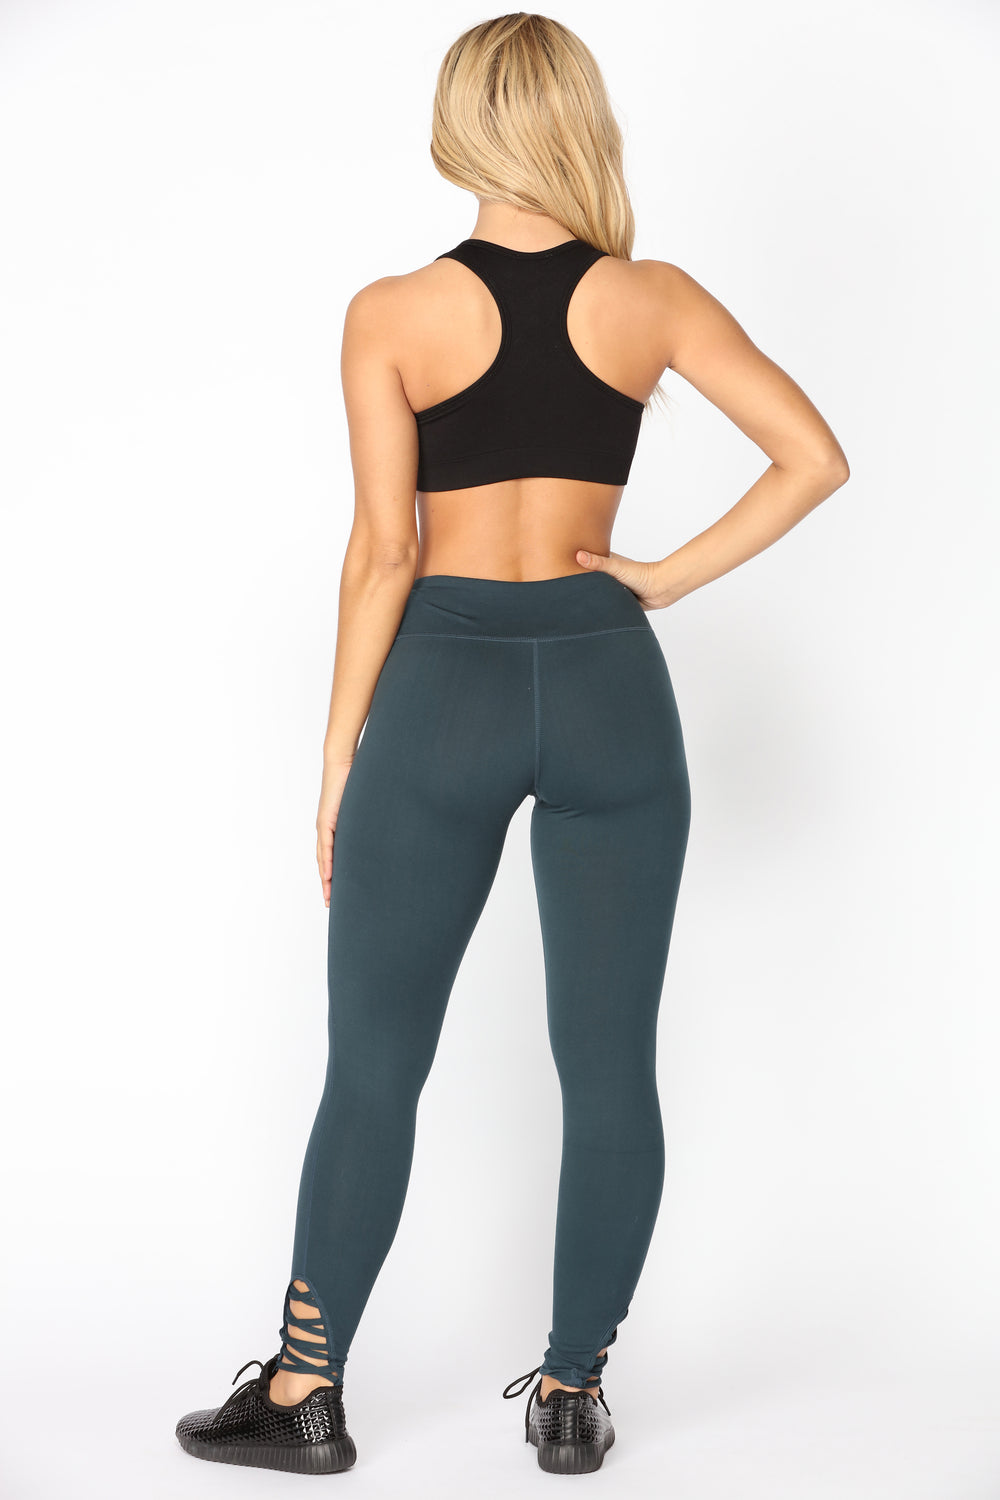 Race You There Seamless Sports Bra - Black